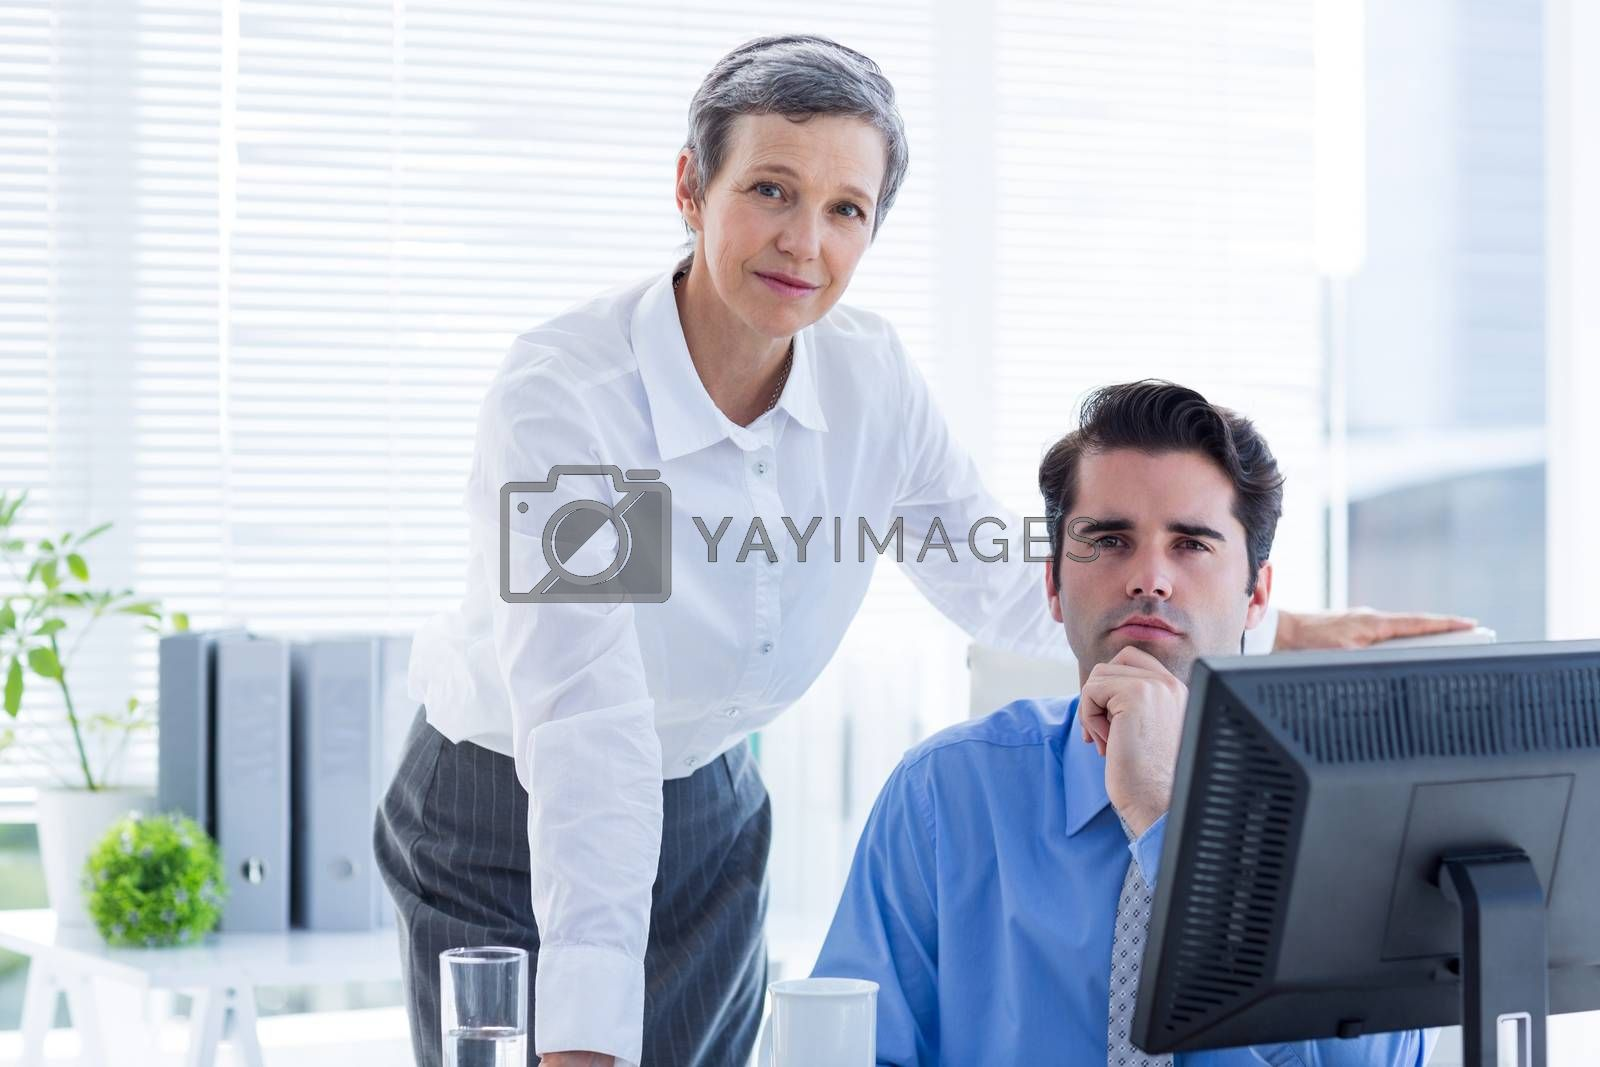 Royalty free image of Business people working together and looking at camera by Wavebreakmedia